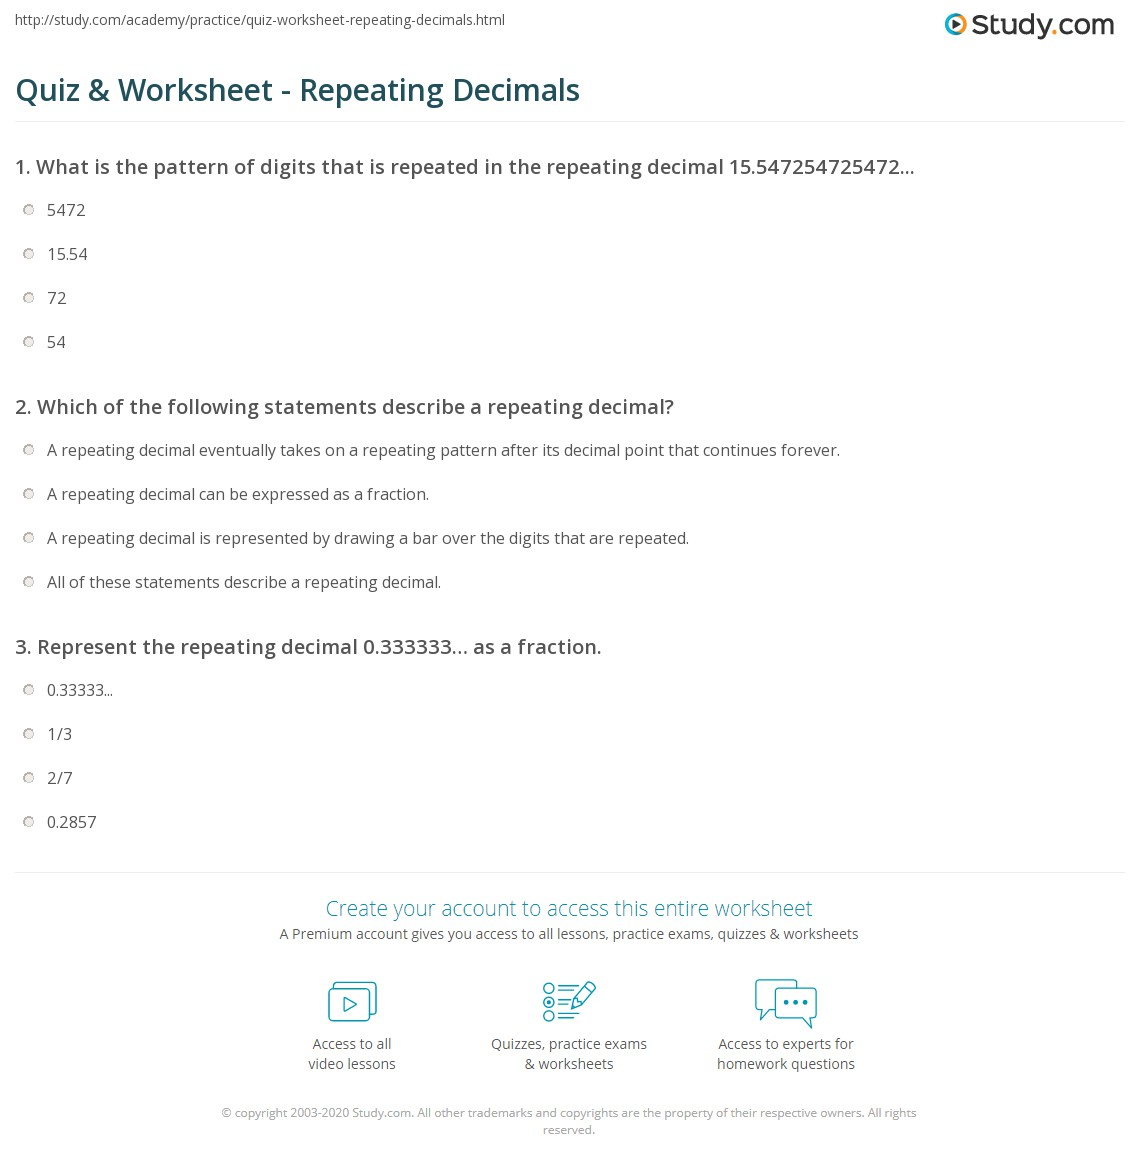 math worksheet : quiz  worksheet  repeating decimals  study  : Recurring Decimals To Fractions Worksheet